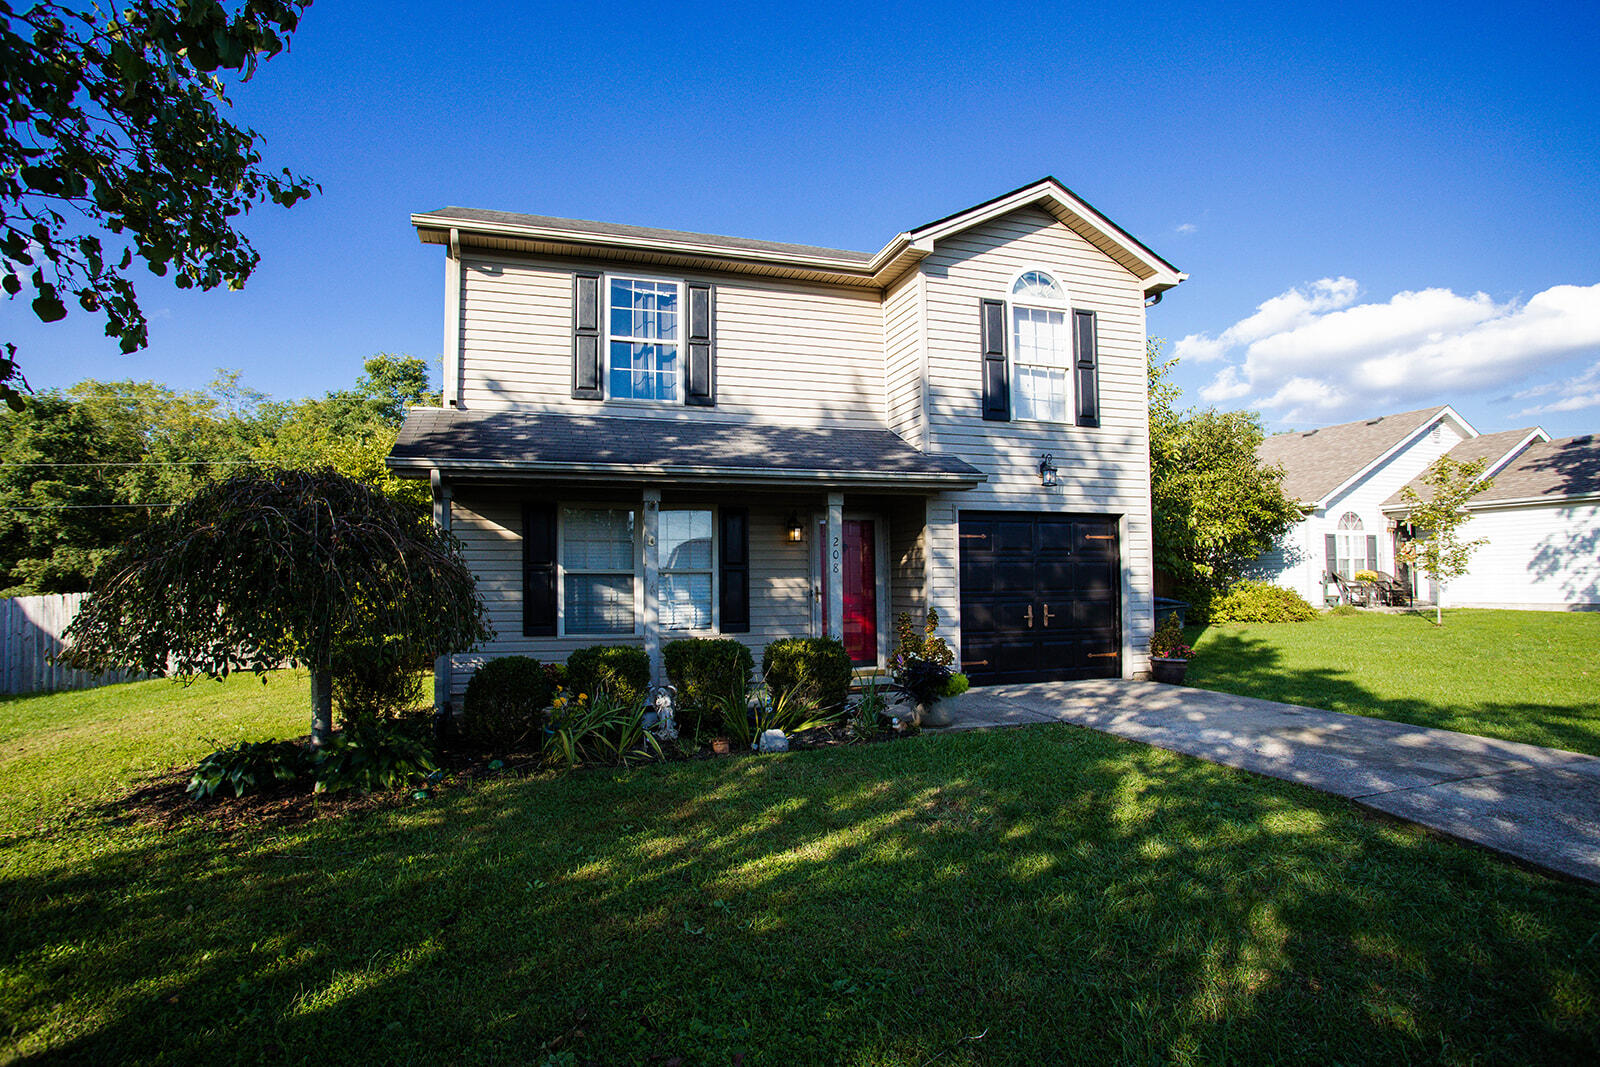 208 Watercrest Way, Winchester, KY 40391